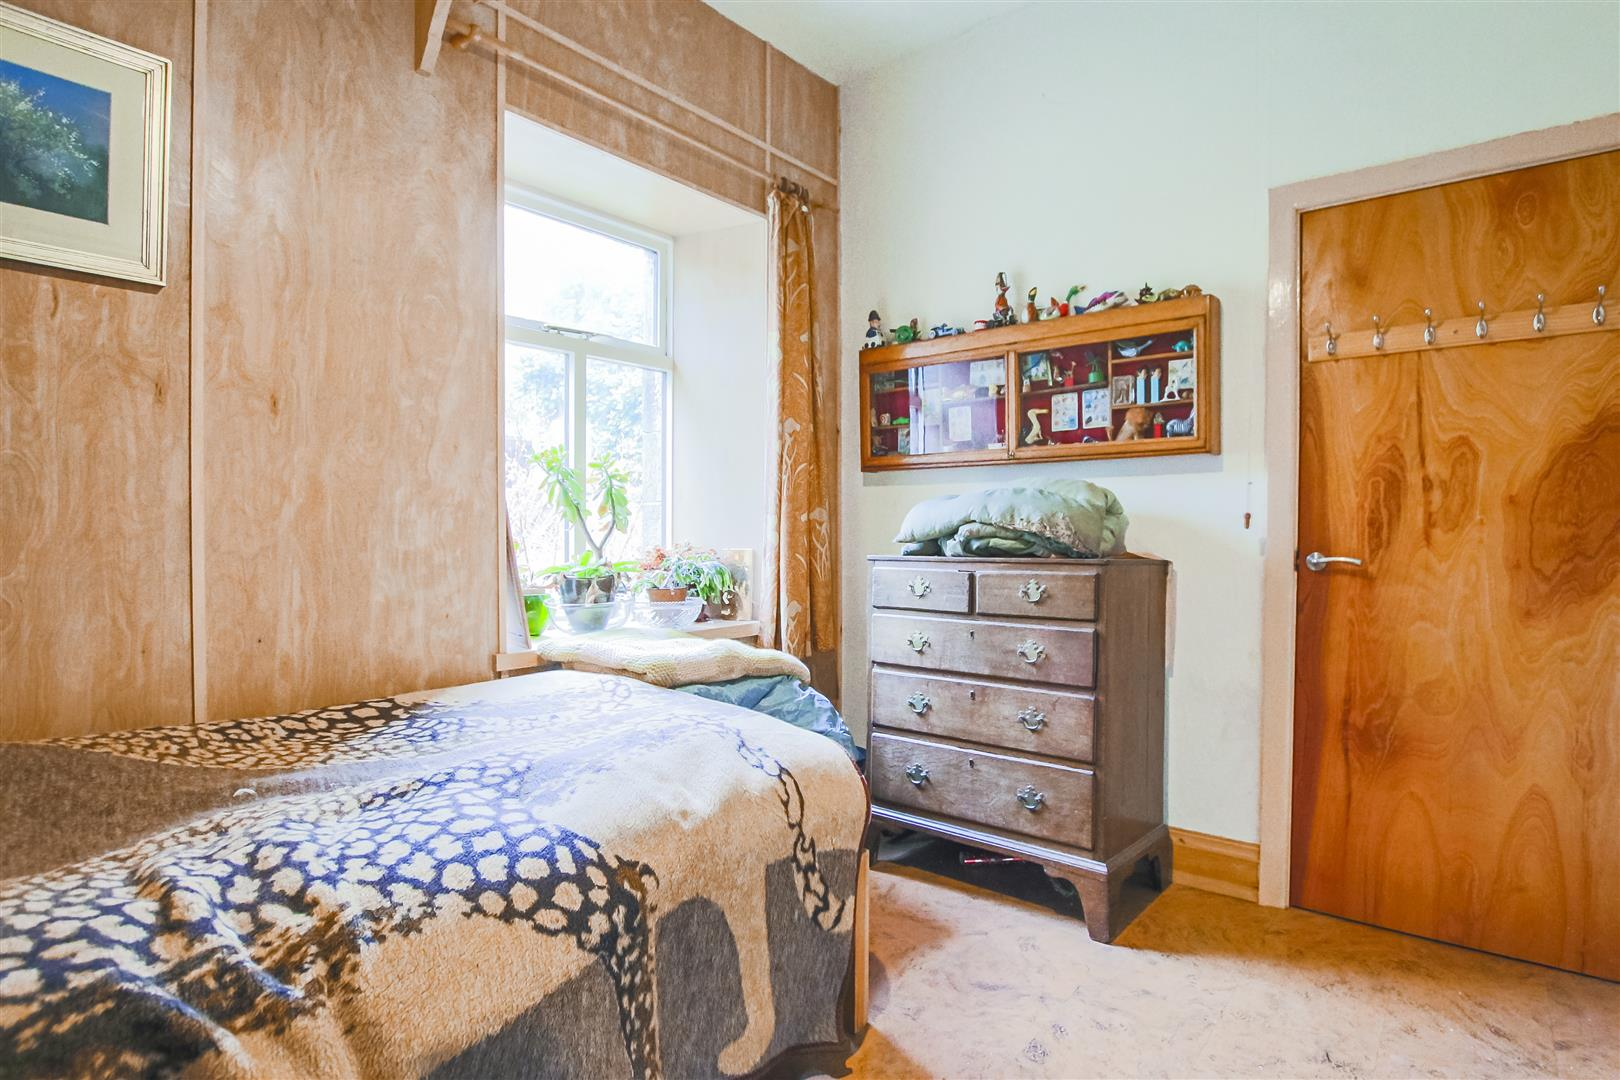 5 Bedroom Farmhouse For Sale - Image 39